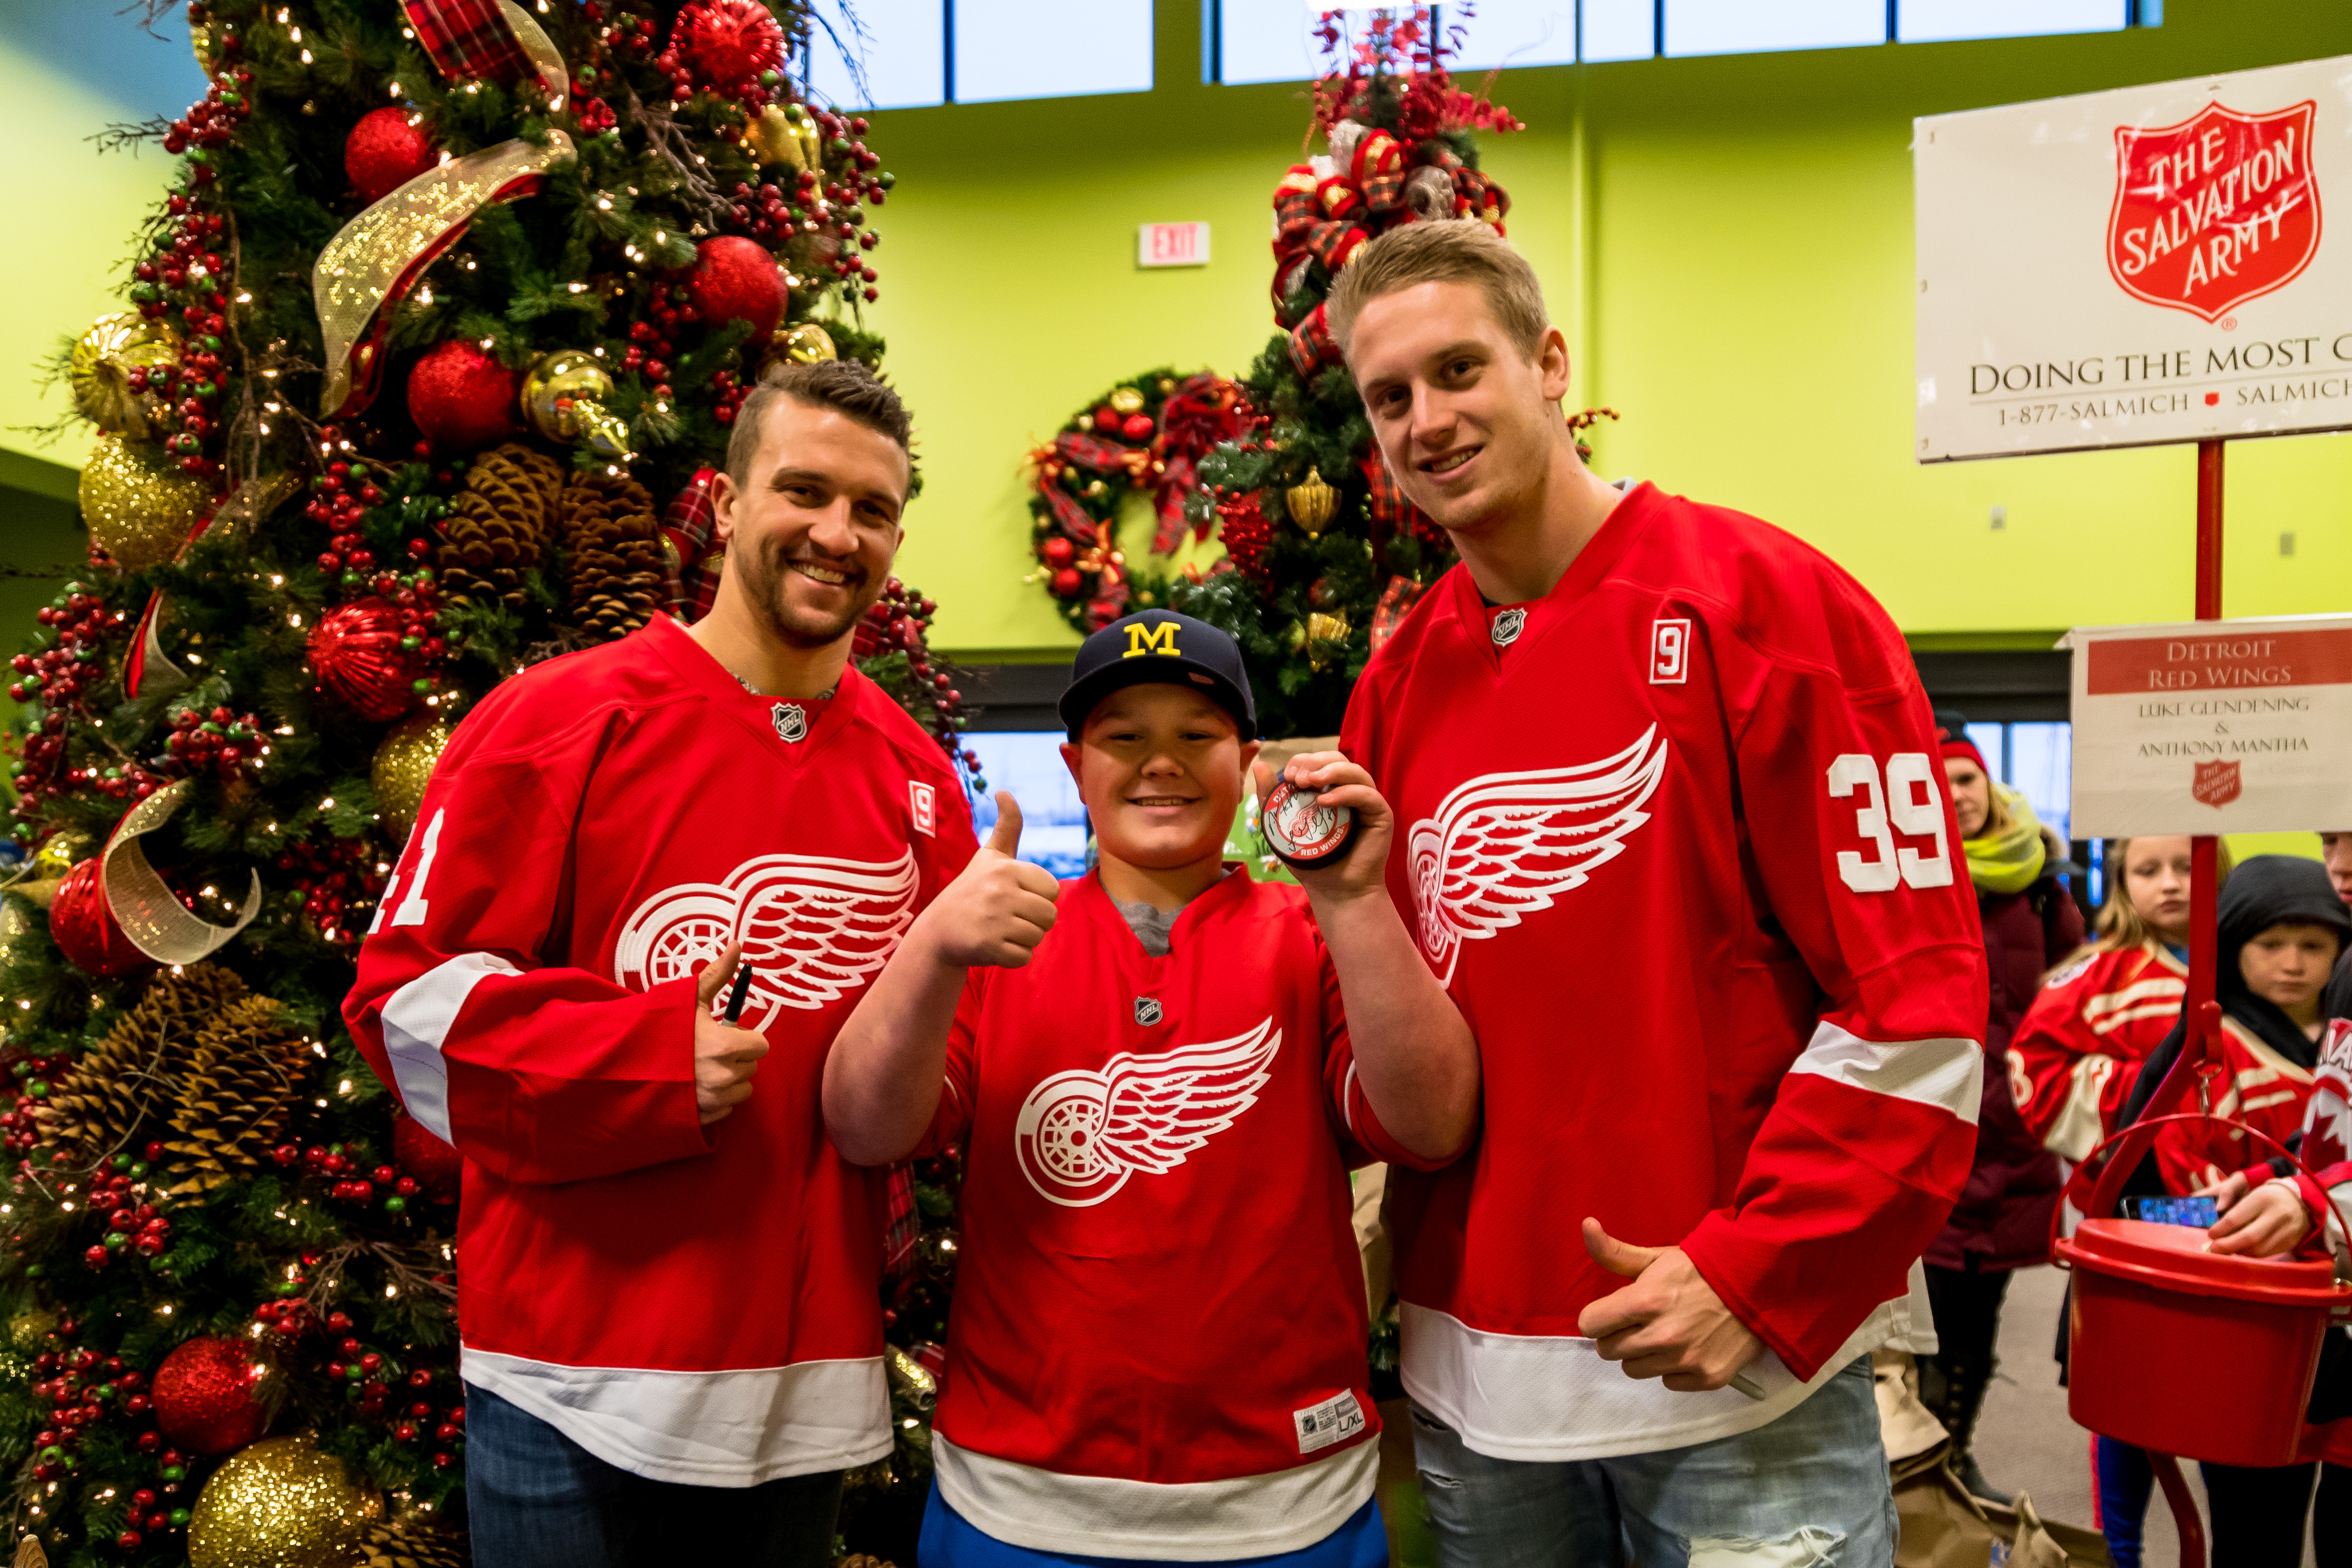 Red Wings for Red Kettles is Friday, December 8th!